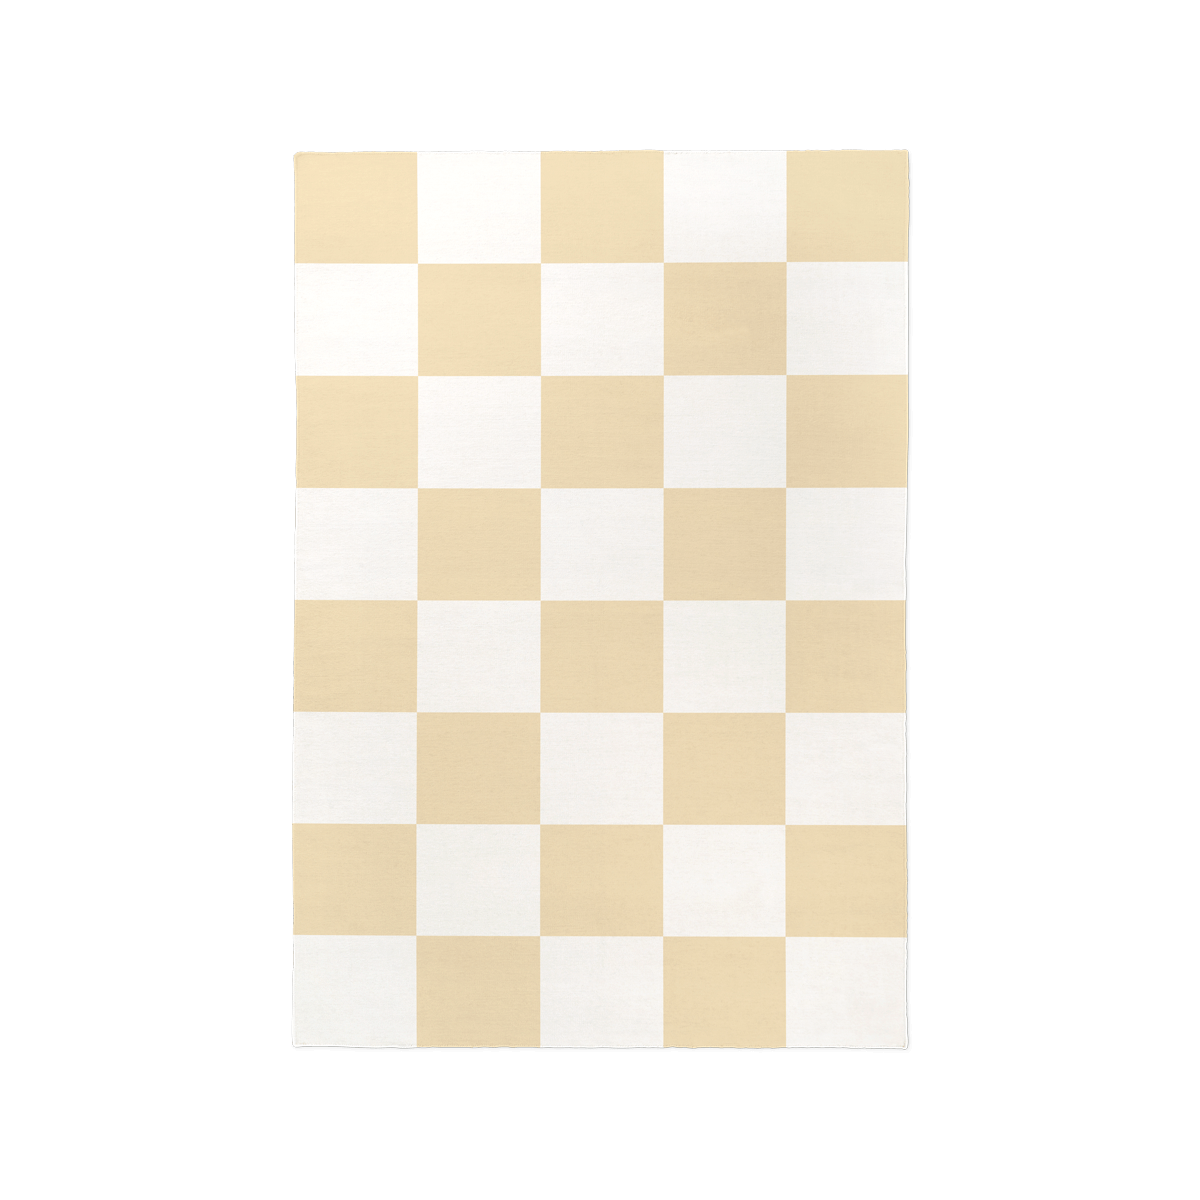 Product image of the flatweave rug Square in the color Yellow. The rug has a check pattern in the colors yellow and cream.